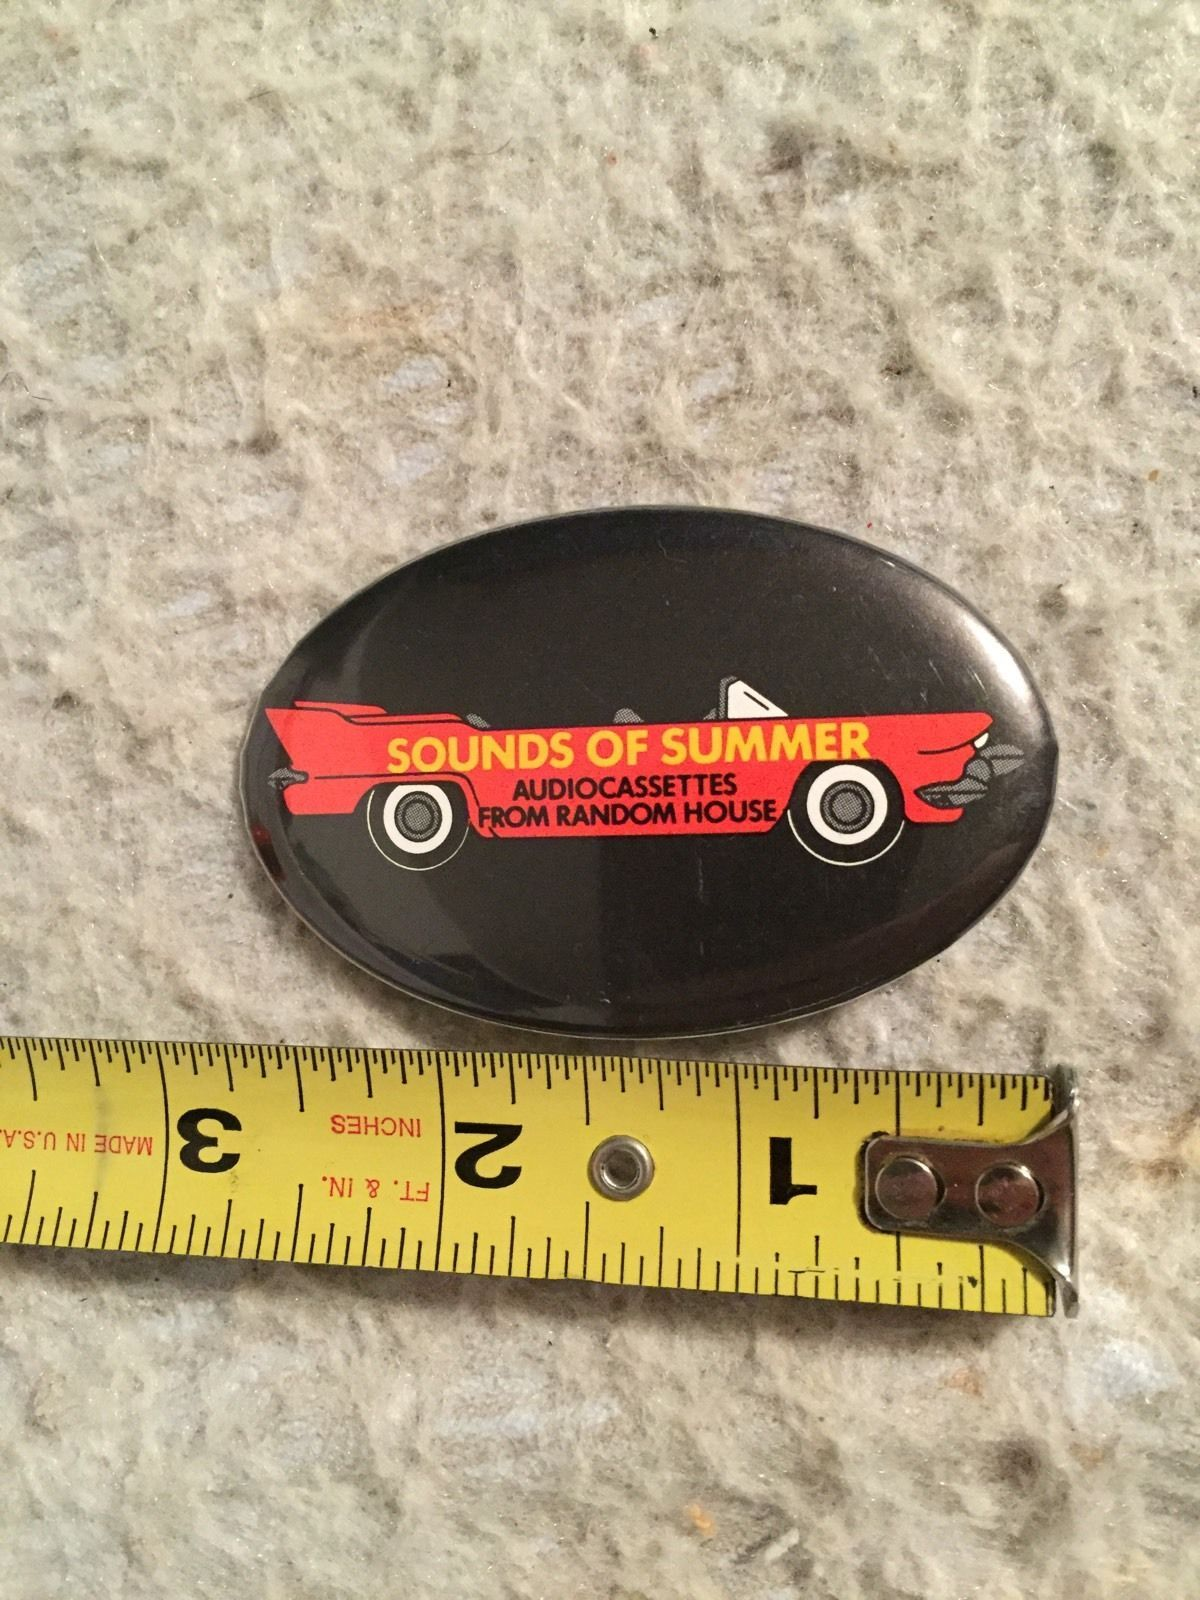 Primary image for Vintage Sounds of Summer Audiocassettes Random House Pin Back Button. Music.